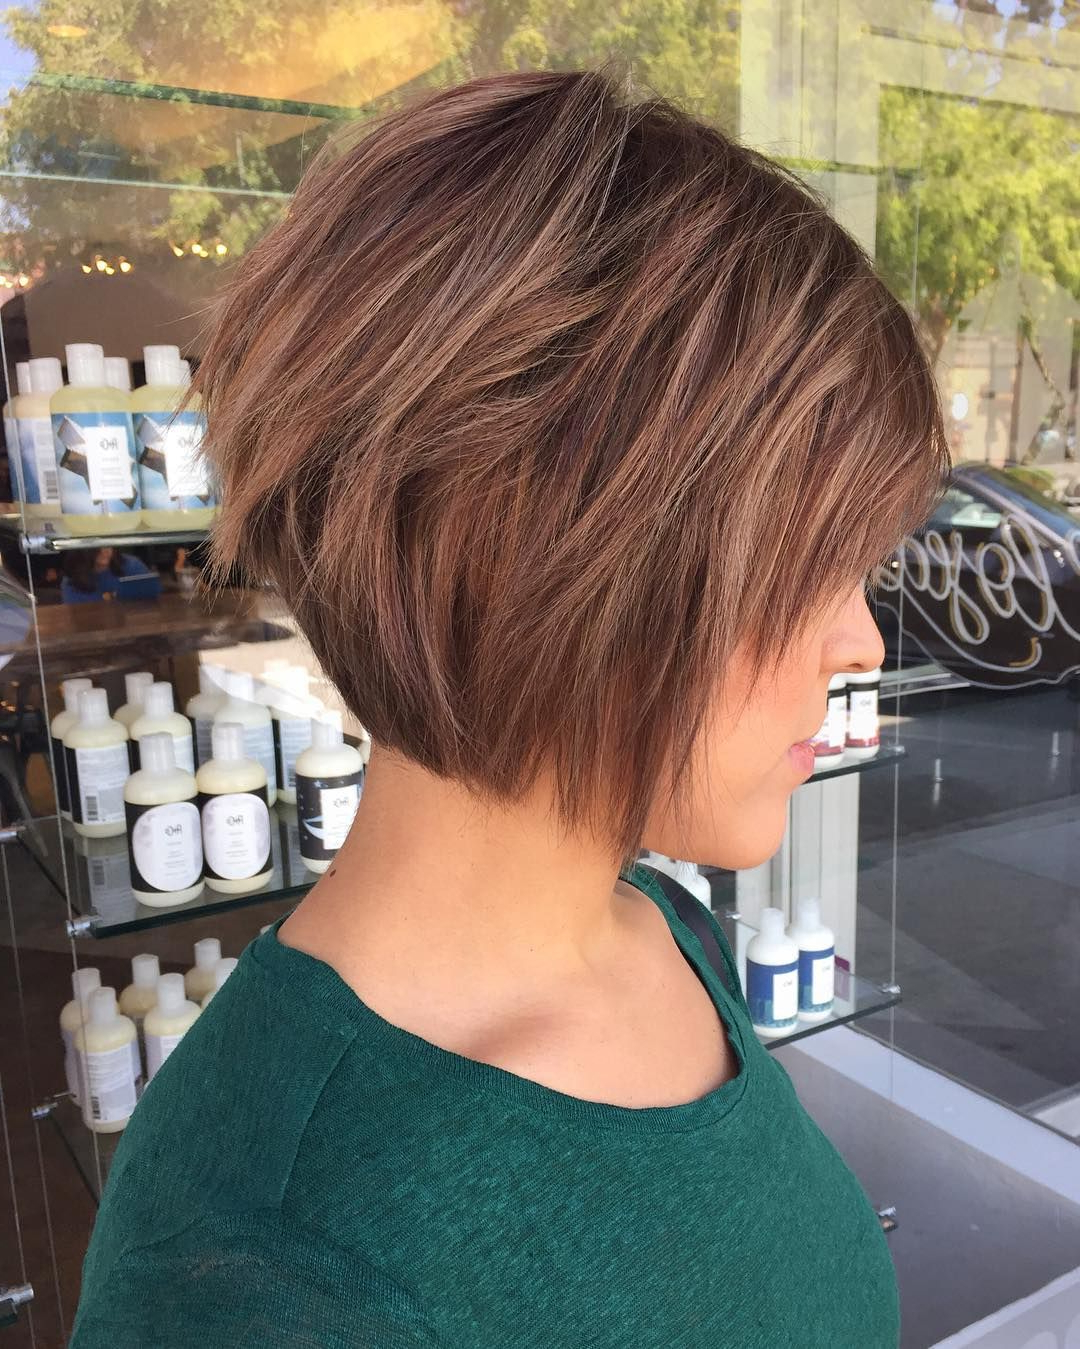 Well Liked A Very Short Layered Bob Hairstyles Pertaining To 50 Chic Long And Short Layered Bob Haircuts — Dazzle With (Gallery 1 of 20)